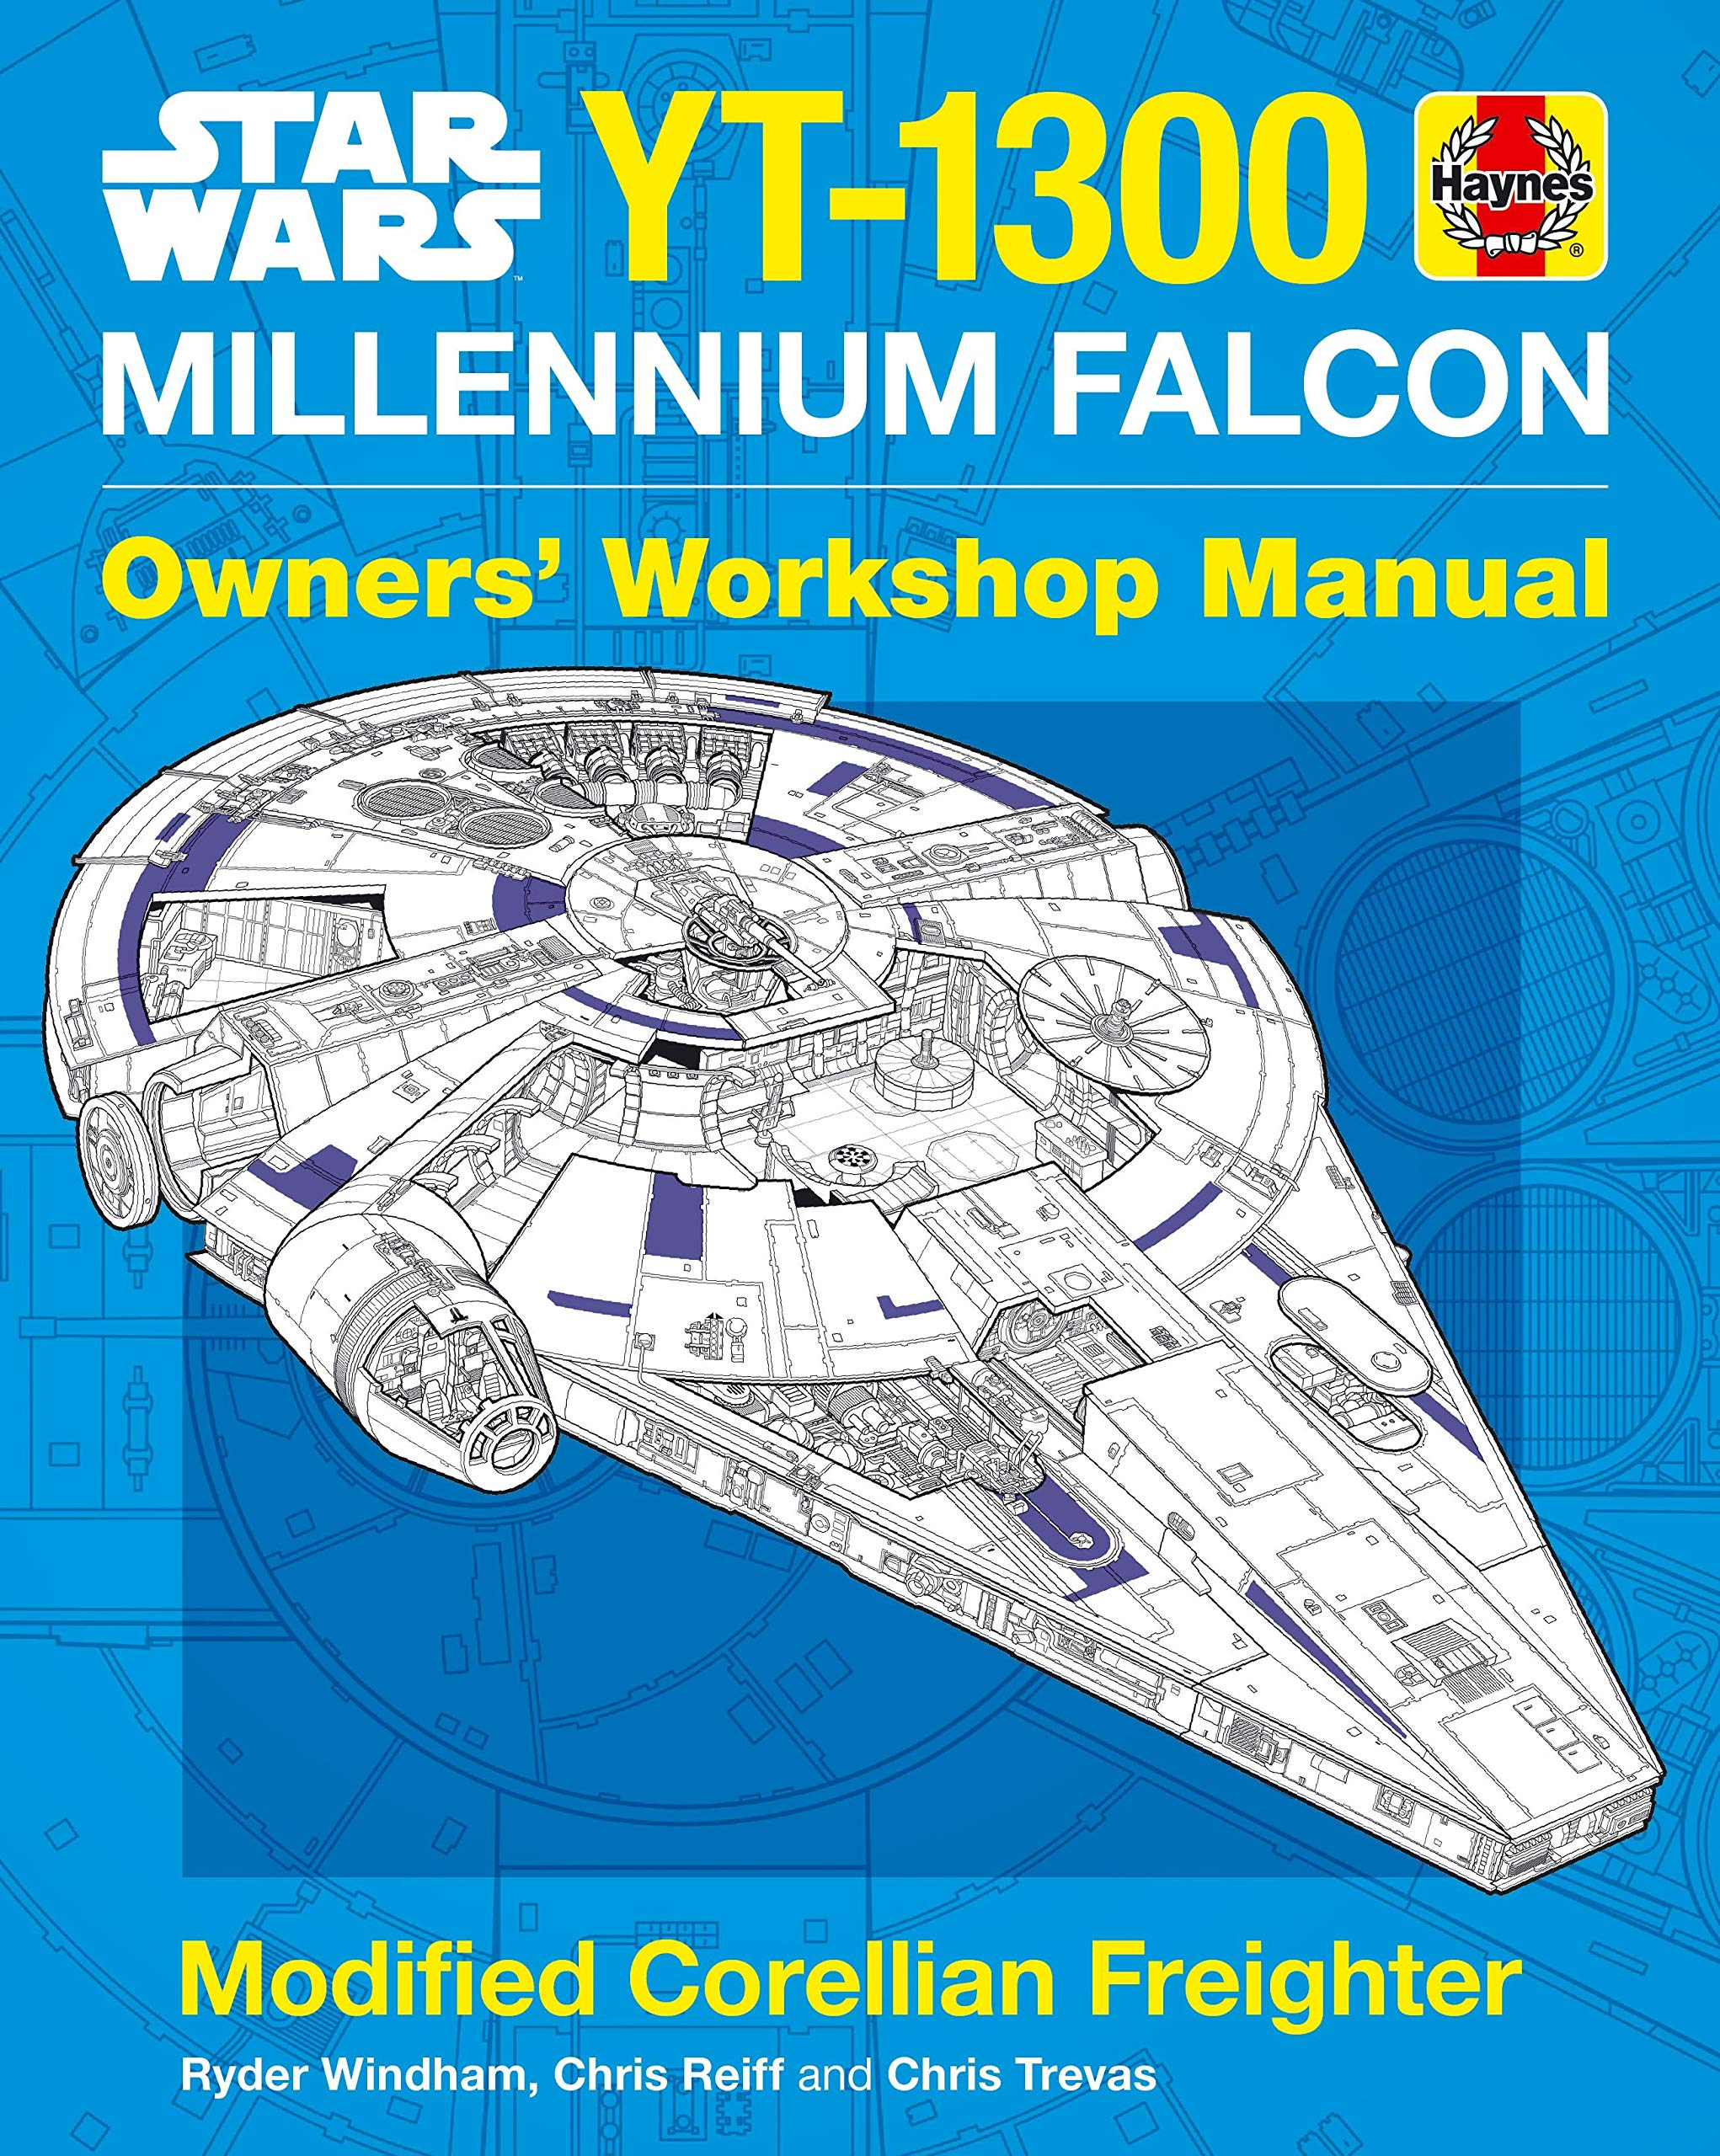 Star Wars YT-1300 Millennium Falcon Manual (Owners Workshop Manual)  Hardcover – 6 Nov 2018